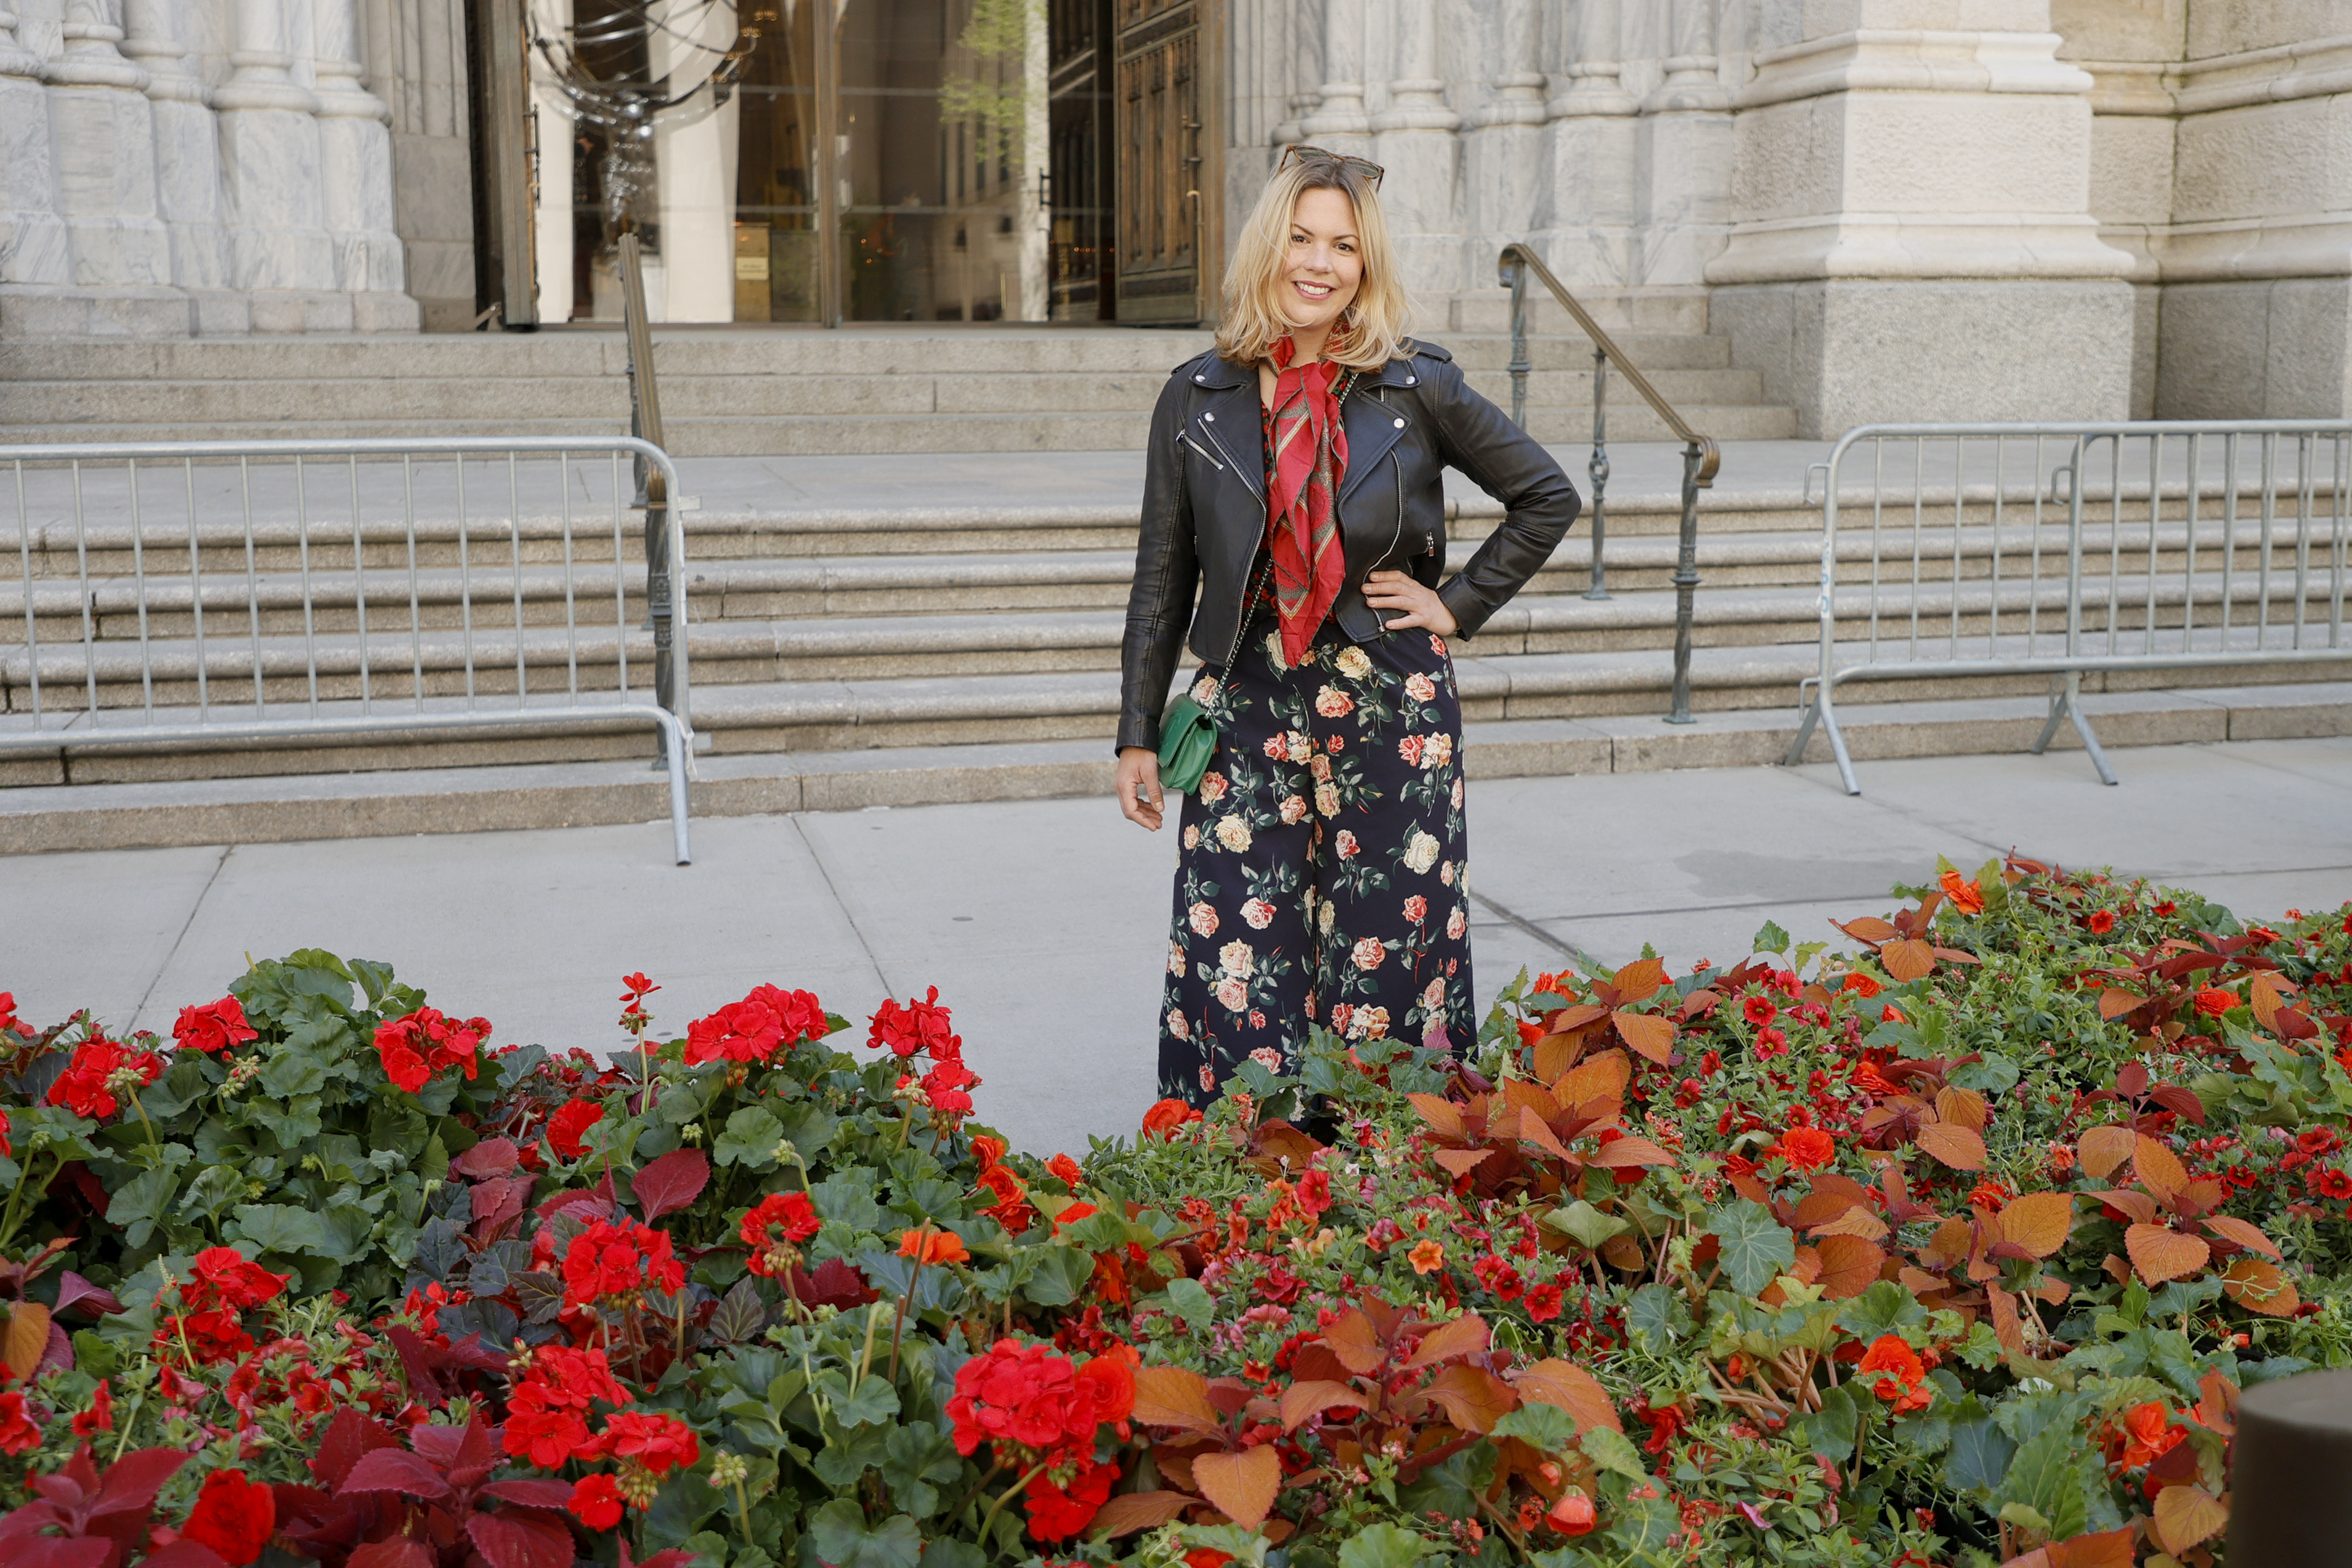 NEW YORK, NEW YORK - MAY 01: Floral installation designer Sachi Rose poses in front of her St. Patrick's Cathedral Fifth Avenue Blooms Mother's Day installation on May 01, 2021 in New York City. (Photo by Michael Loccisano/Getty Images for Fifth Avenue Blooms Mother's Day Installation)